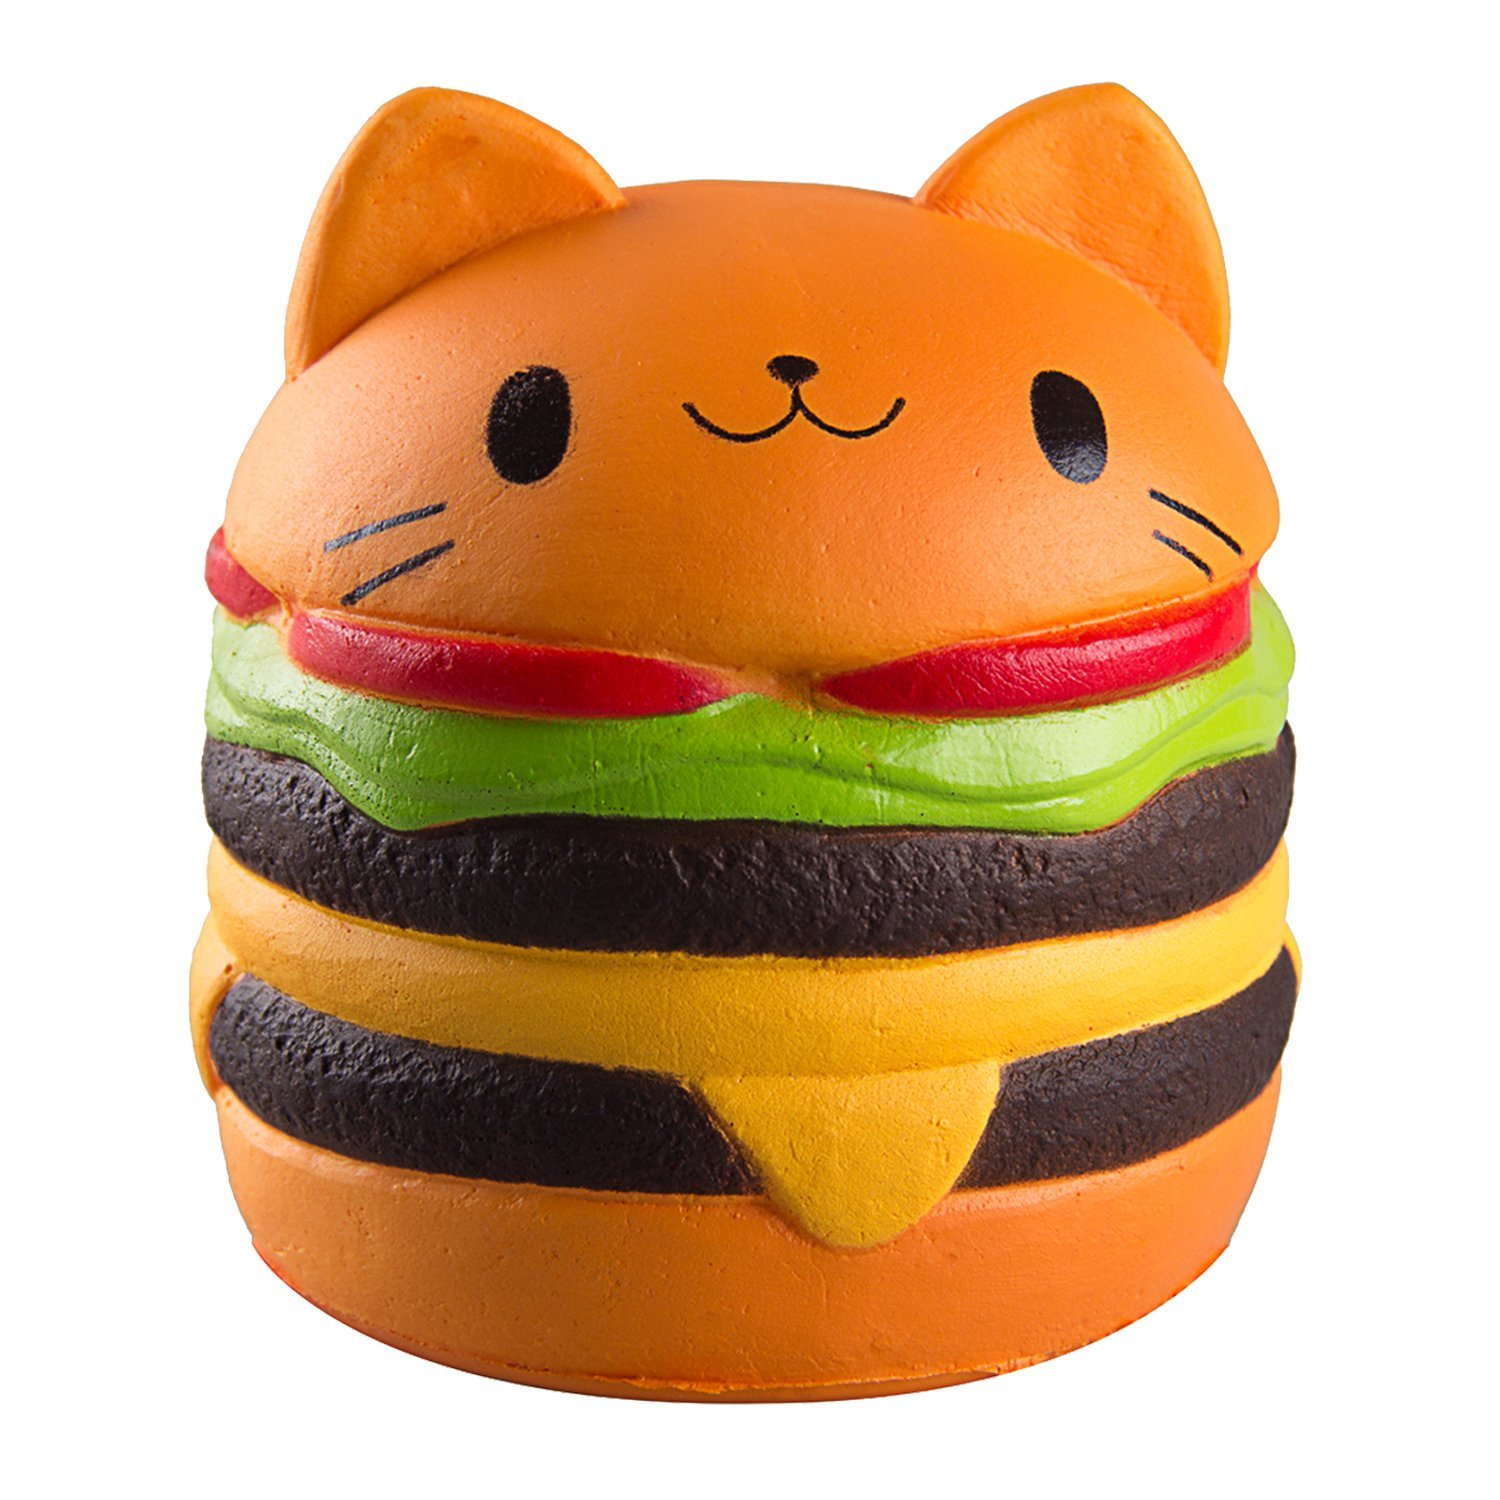 WATINC Kawaii 1 pcs Jumbo Food Squishise Cat Hamburgers Cream Scented Slow Rising Squishies Charms, Kid Toy, Lovely Toy Stress Relief Toy, Decorations Toy Large (Hamburgers )